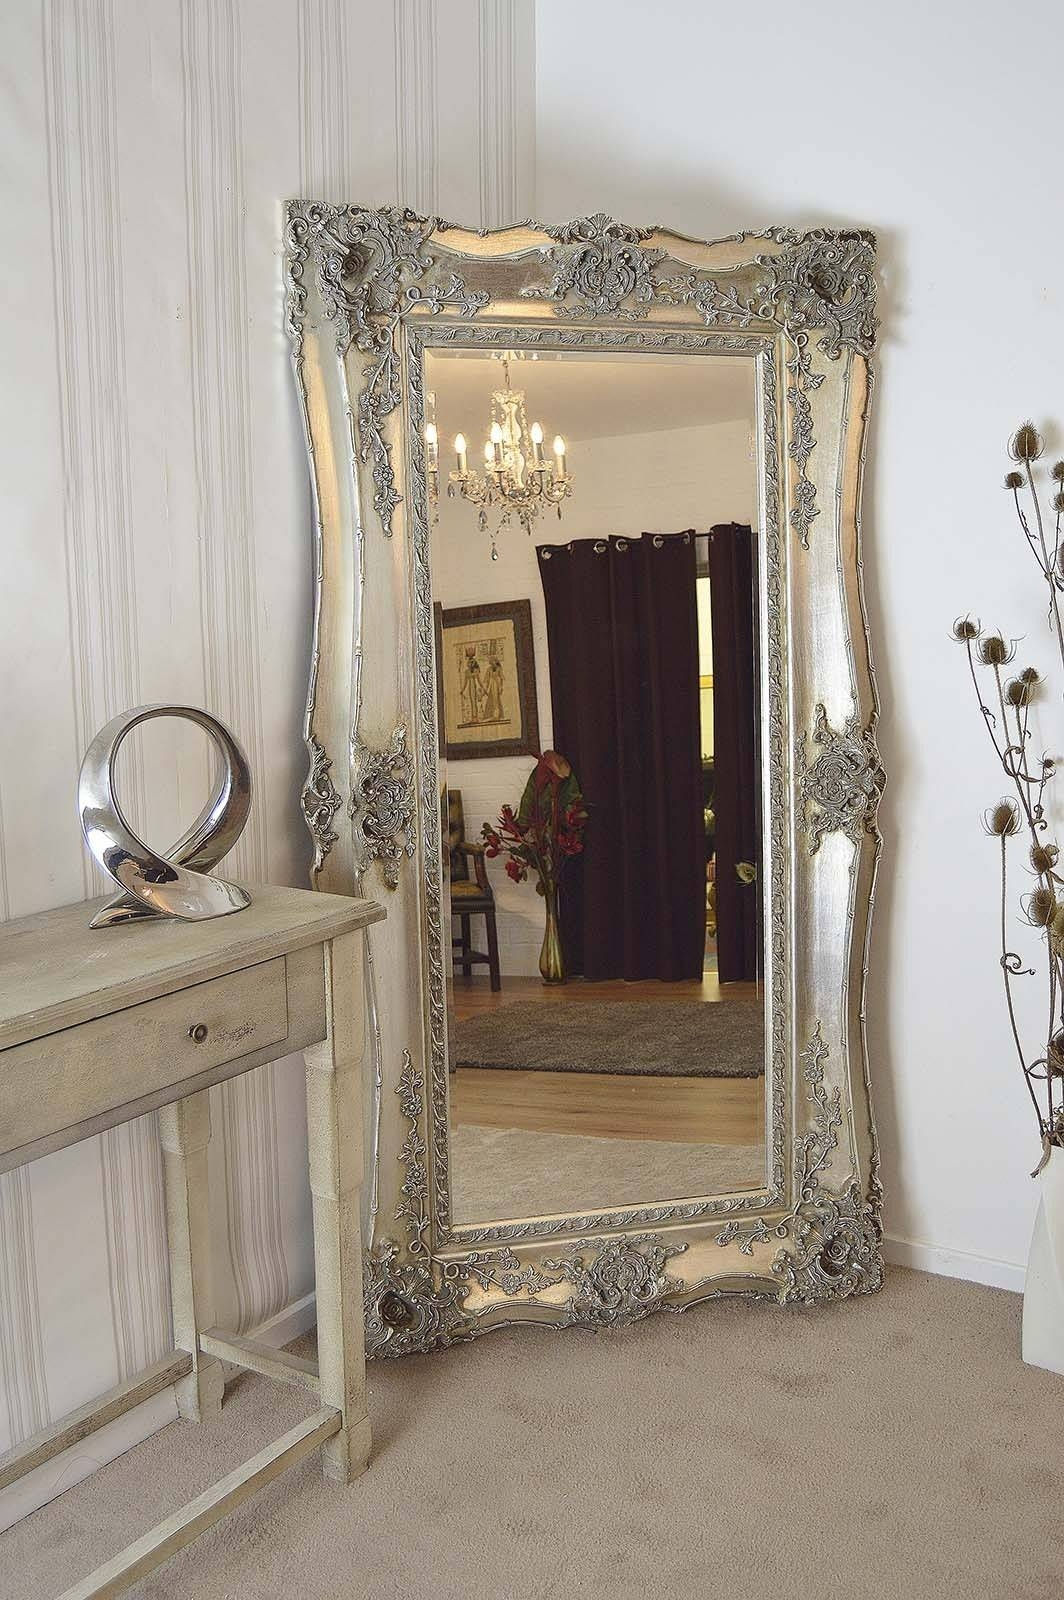 Bedroom Furniture Sets : Table Mirror Extra Large Wall Mirrors For Shabby Chic Floor Standing Mirrors (View 2 of 15)